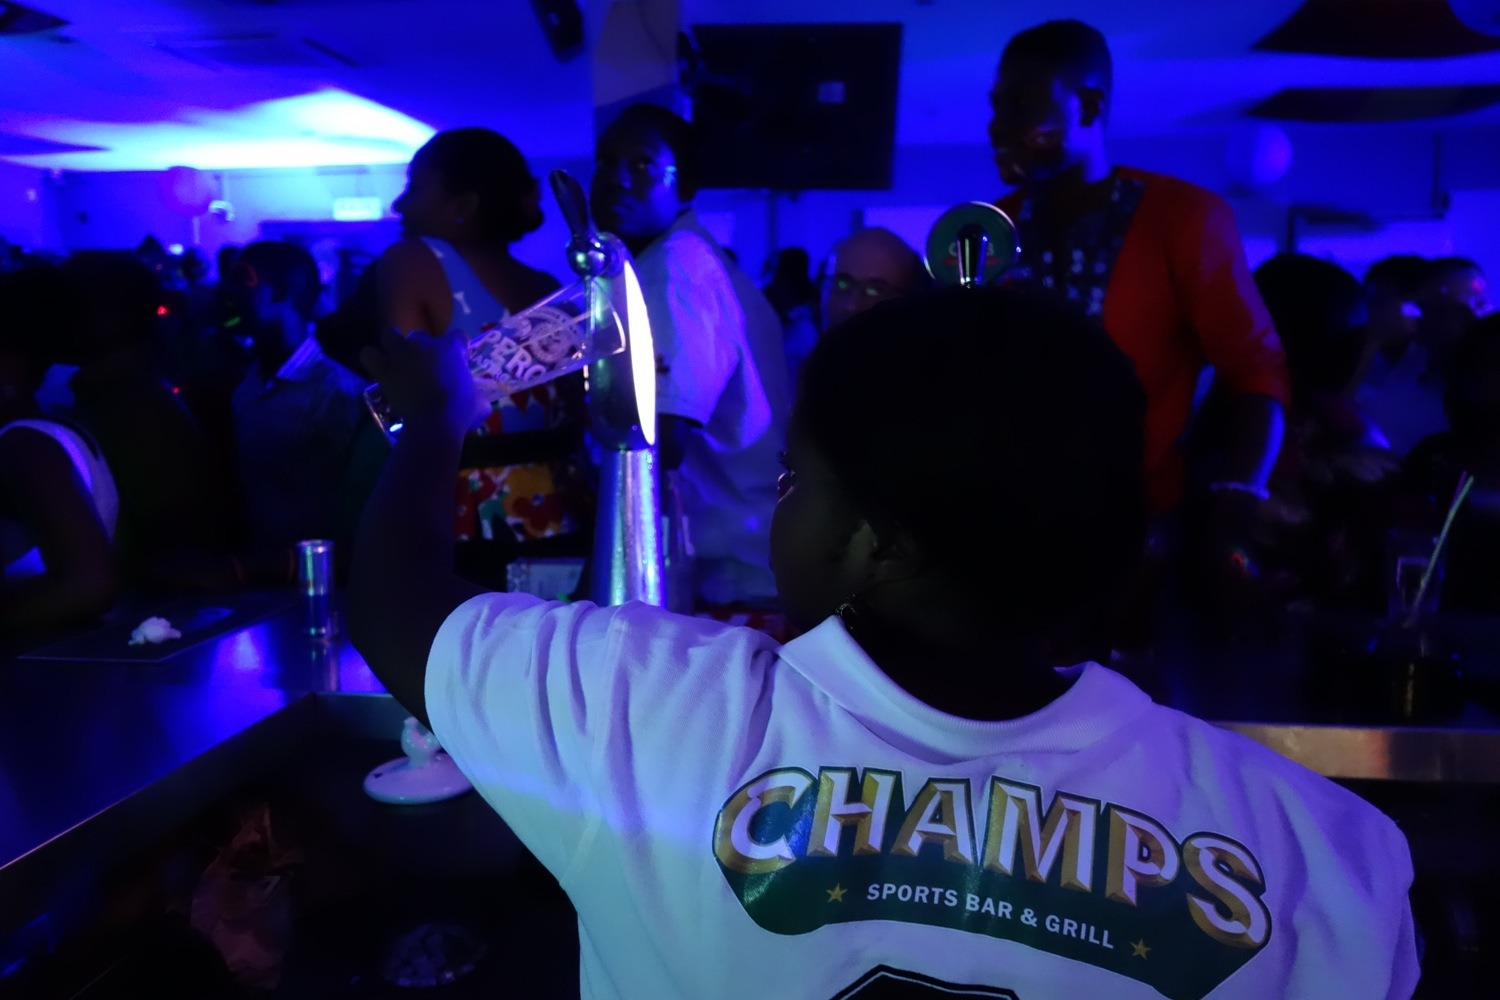 Champs Sports Bar & Grill, Accra, Ghana